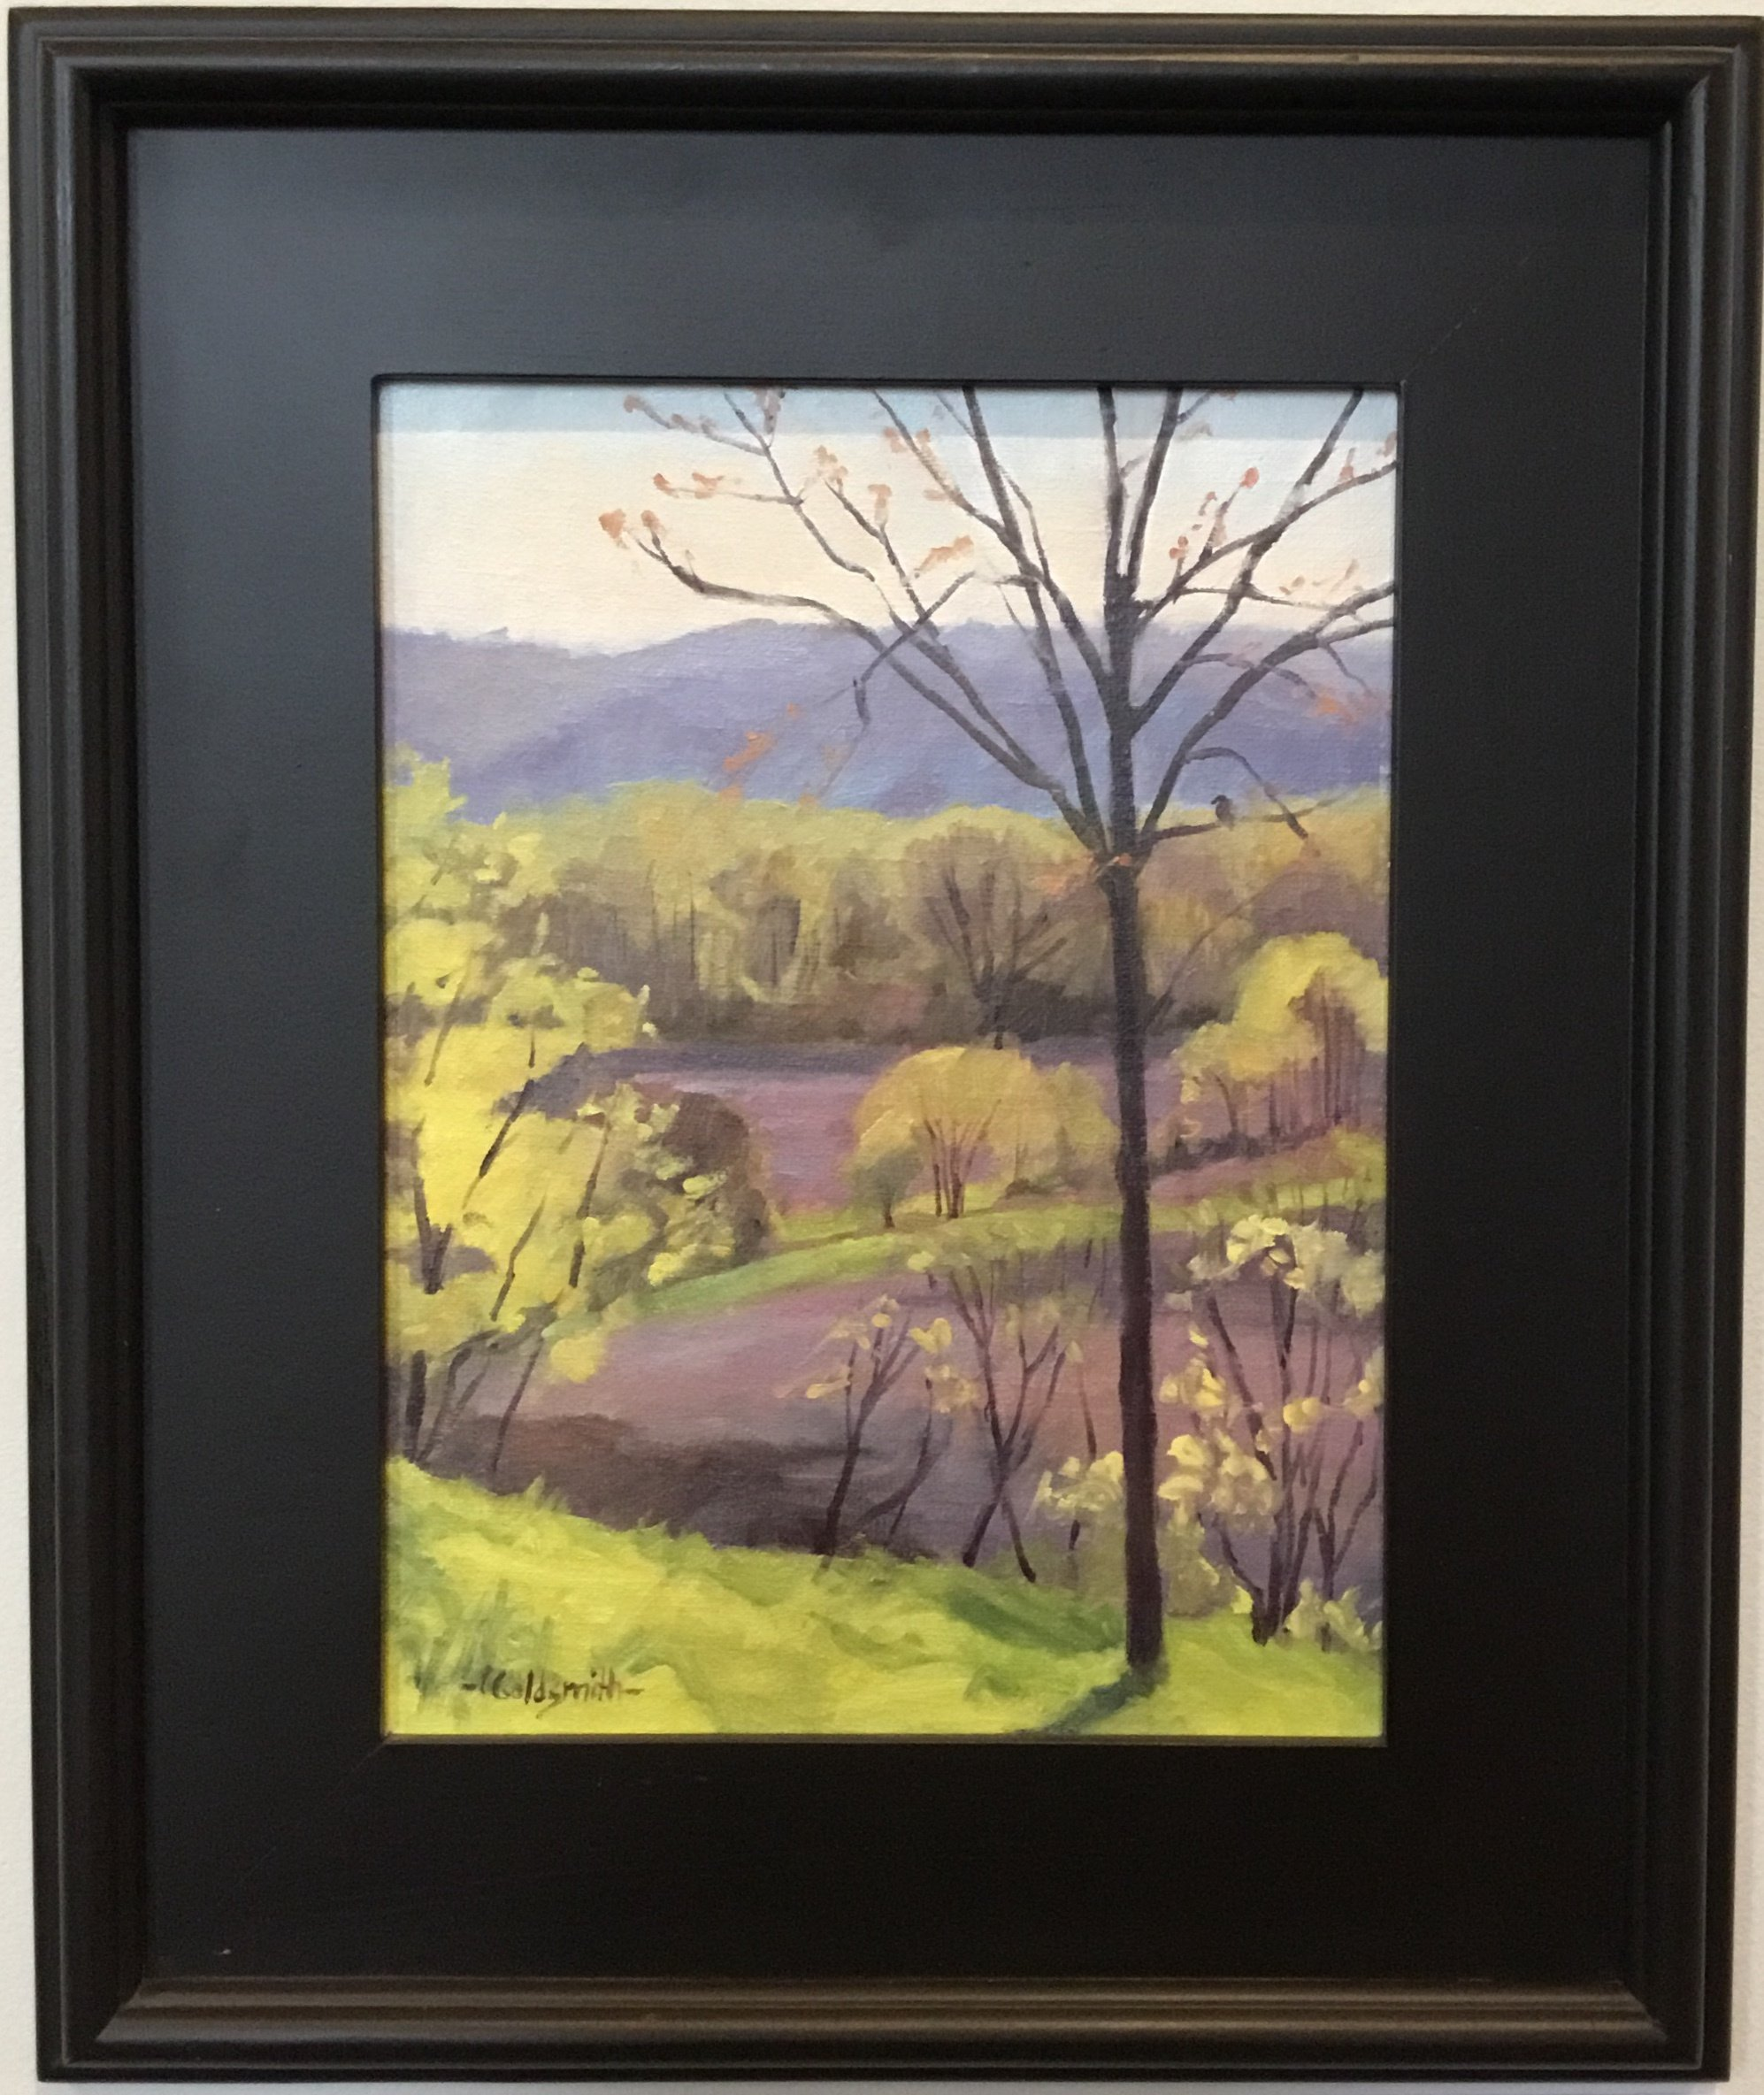 "View from Sugar Creek Winery Augusta Oil on linen panel 12"" X 9"" $375."